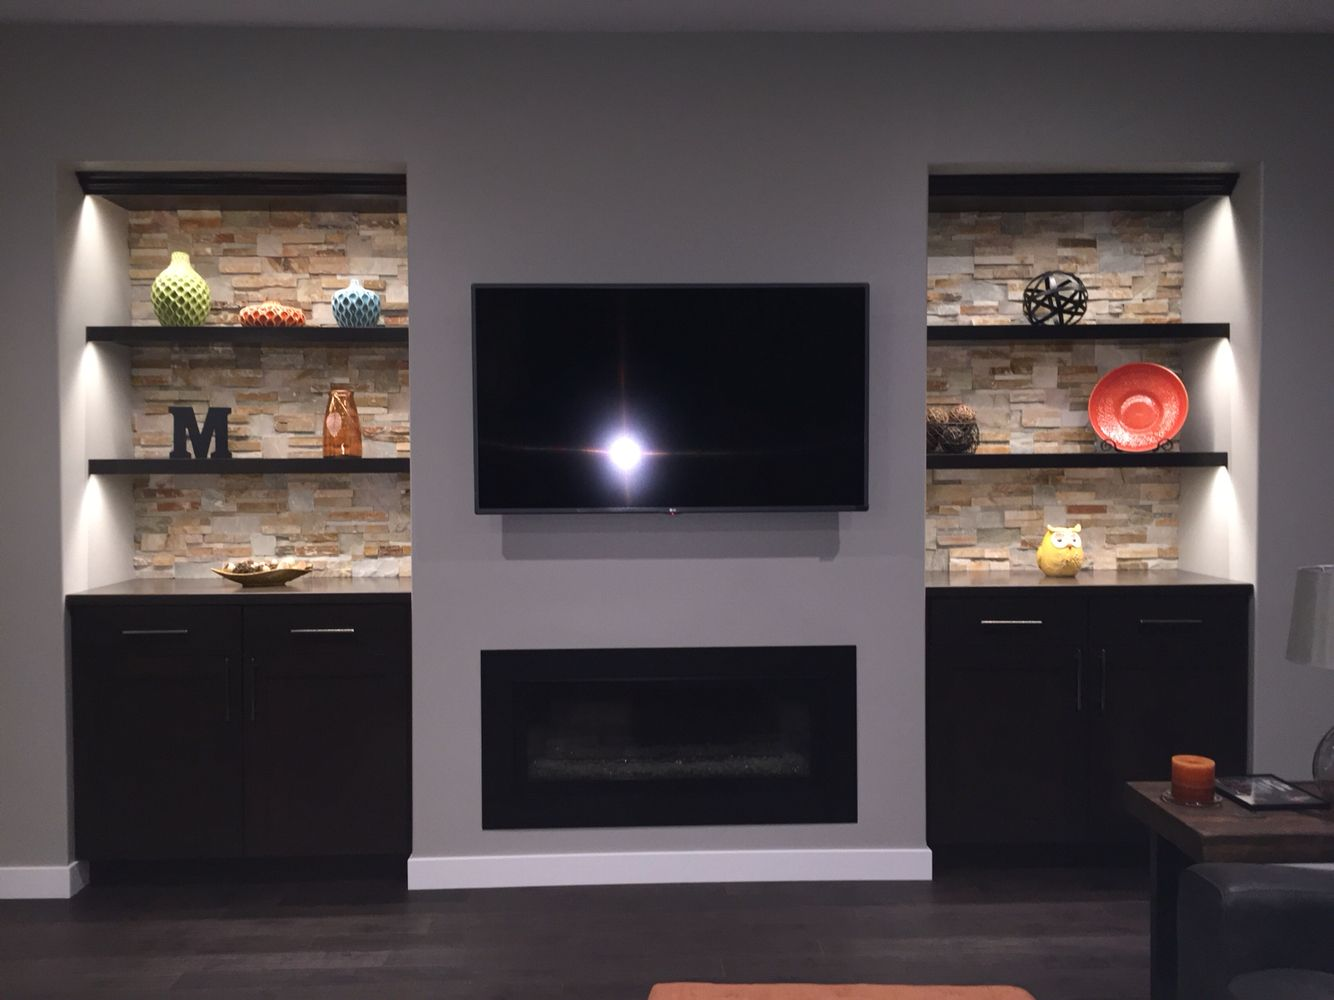 Basement Fireplace Ideas Pin By Angie Woods Mercil On Fireplace Ideas Room